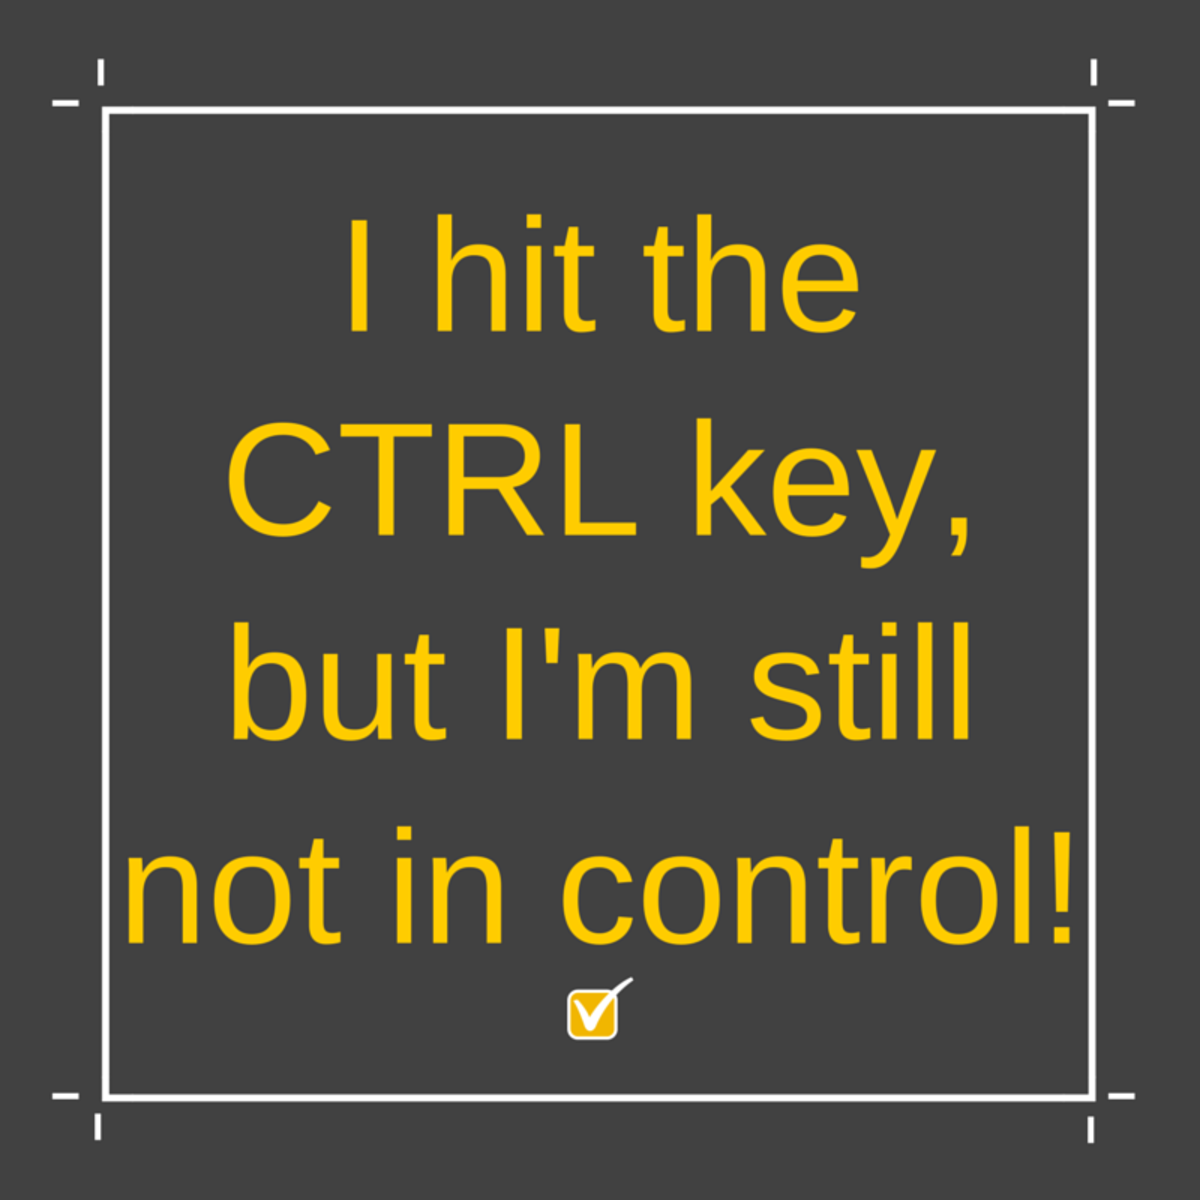 Technological email sign-off: I hit the CTRL key, but I'm still not in control!